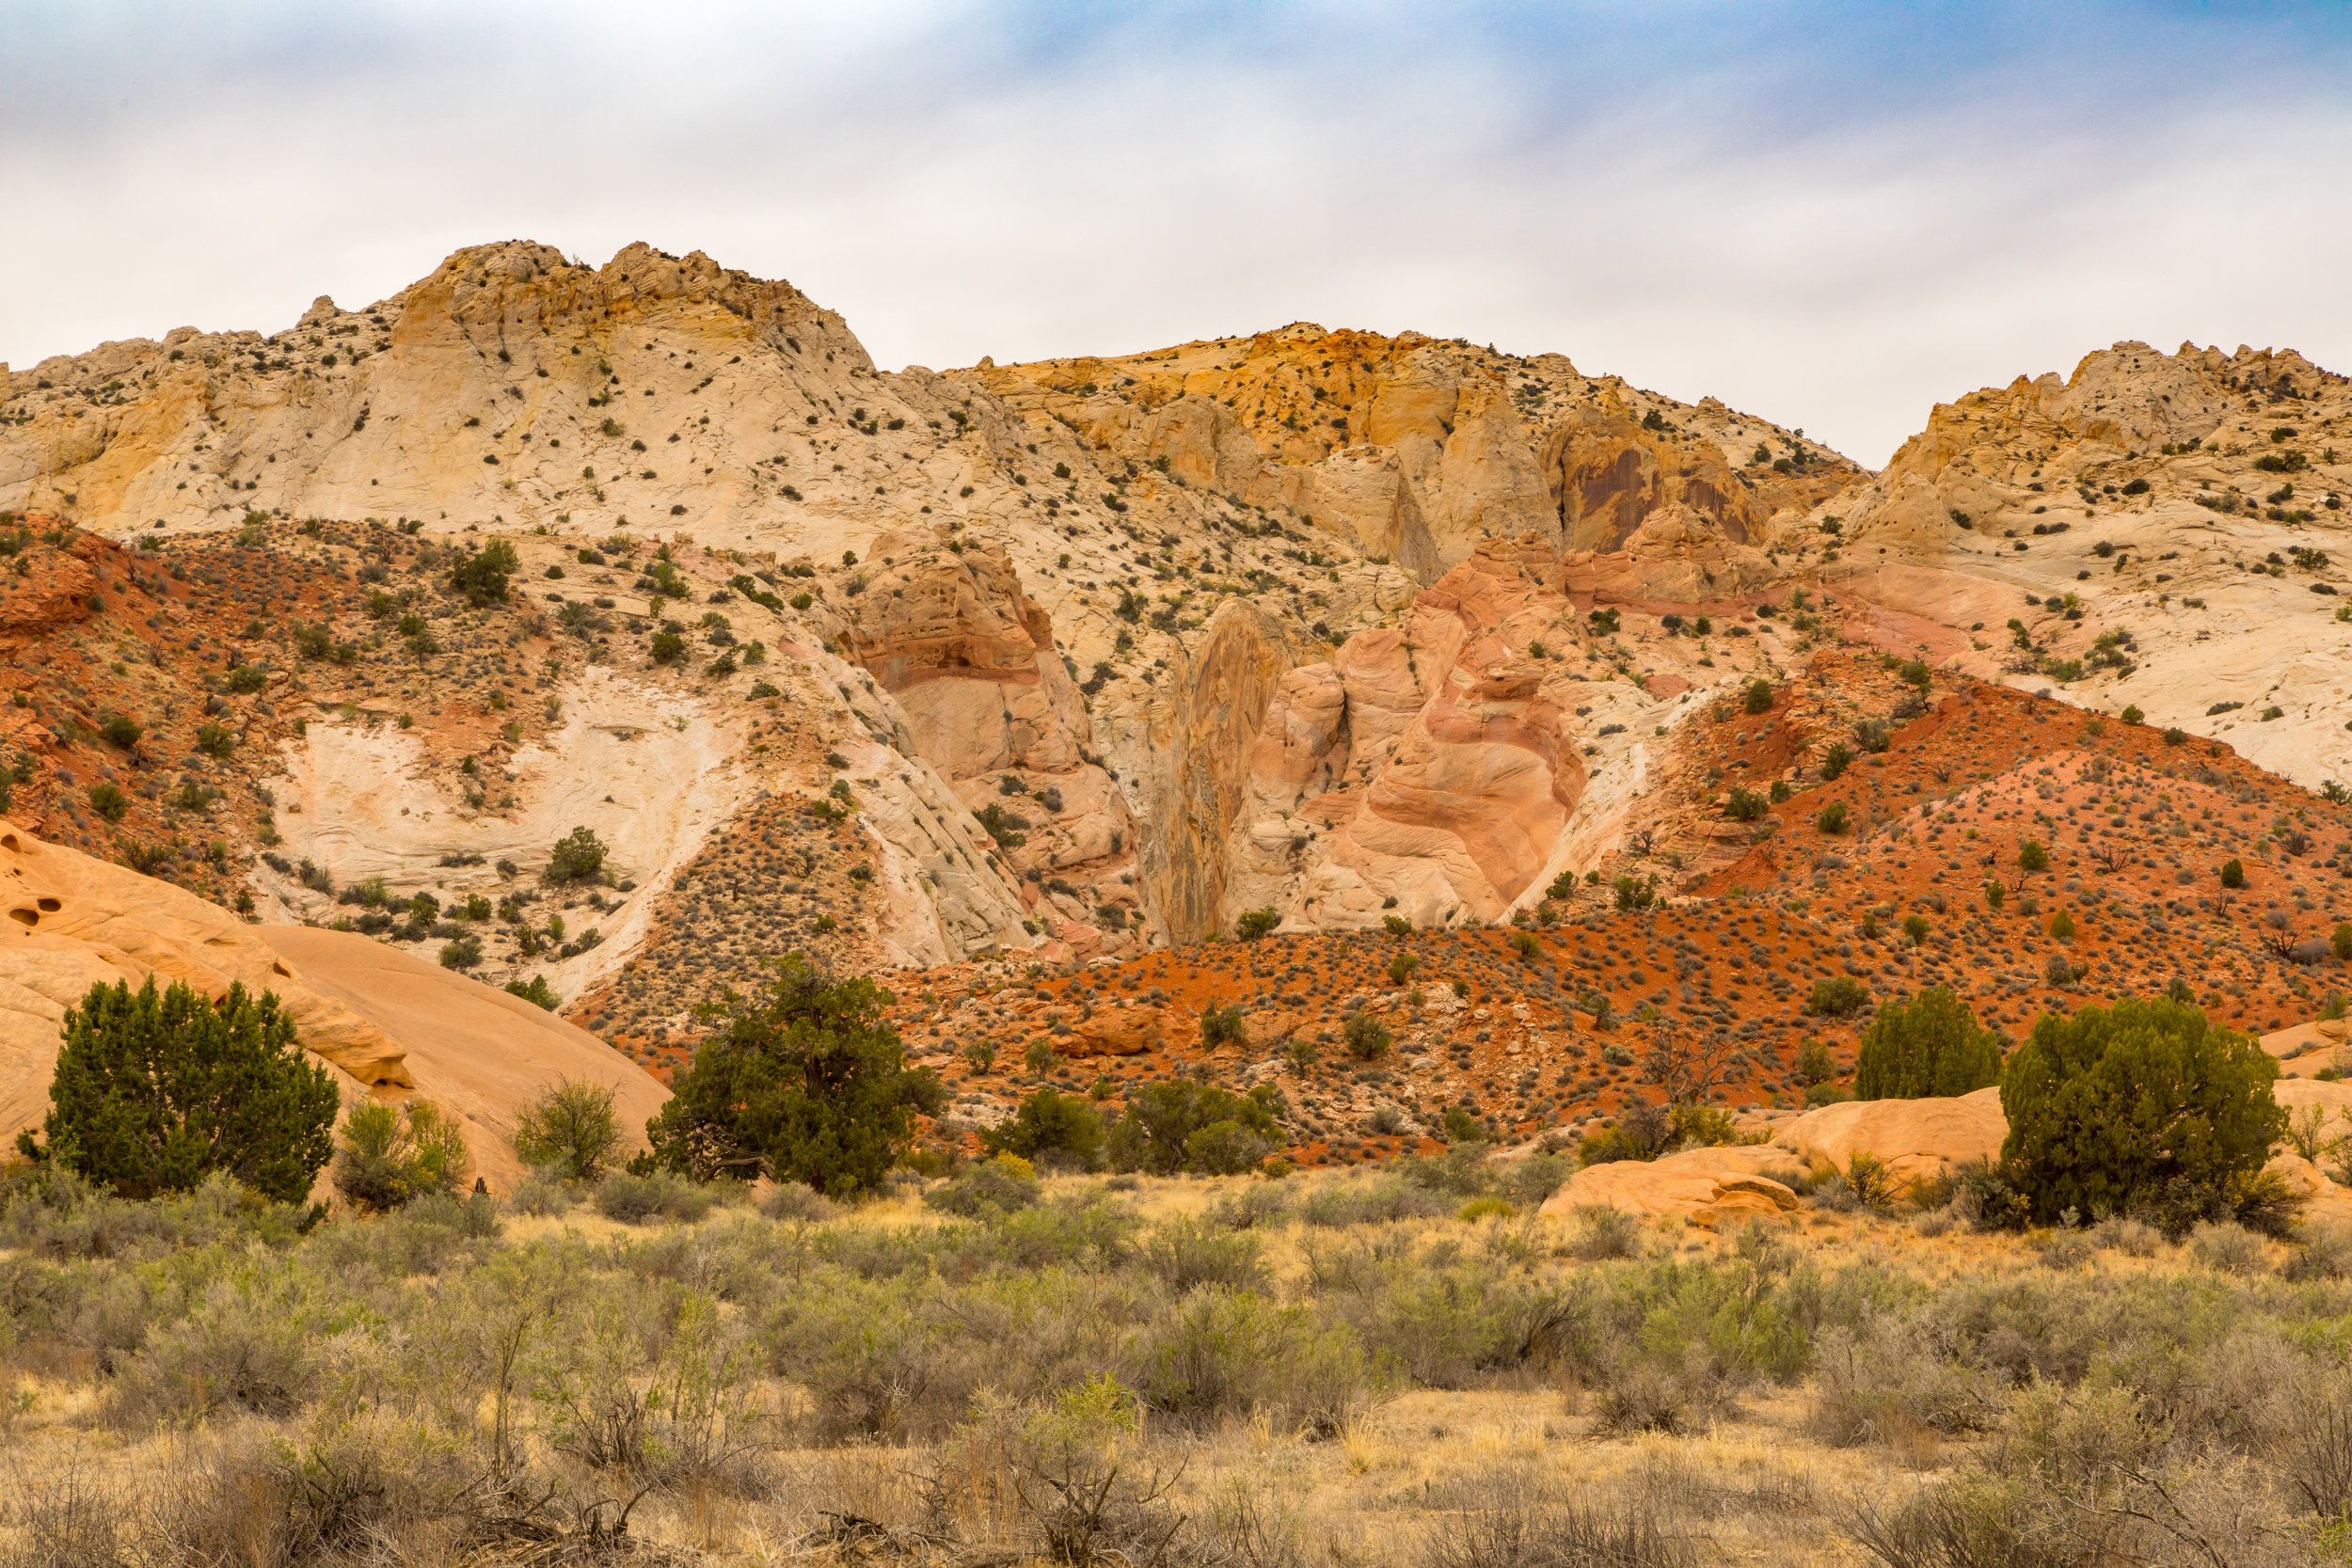 Capitol Reef National Park, Image # 4865